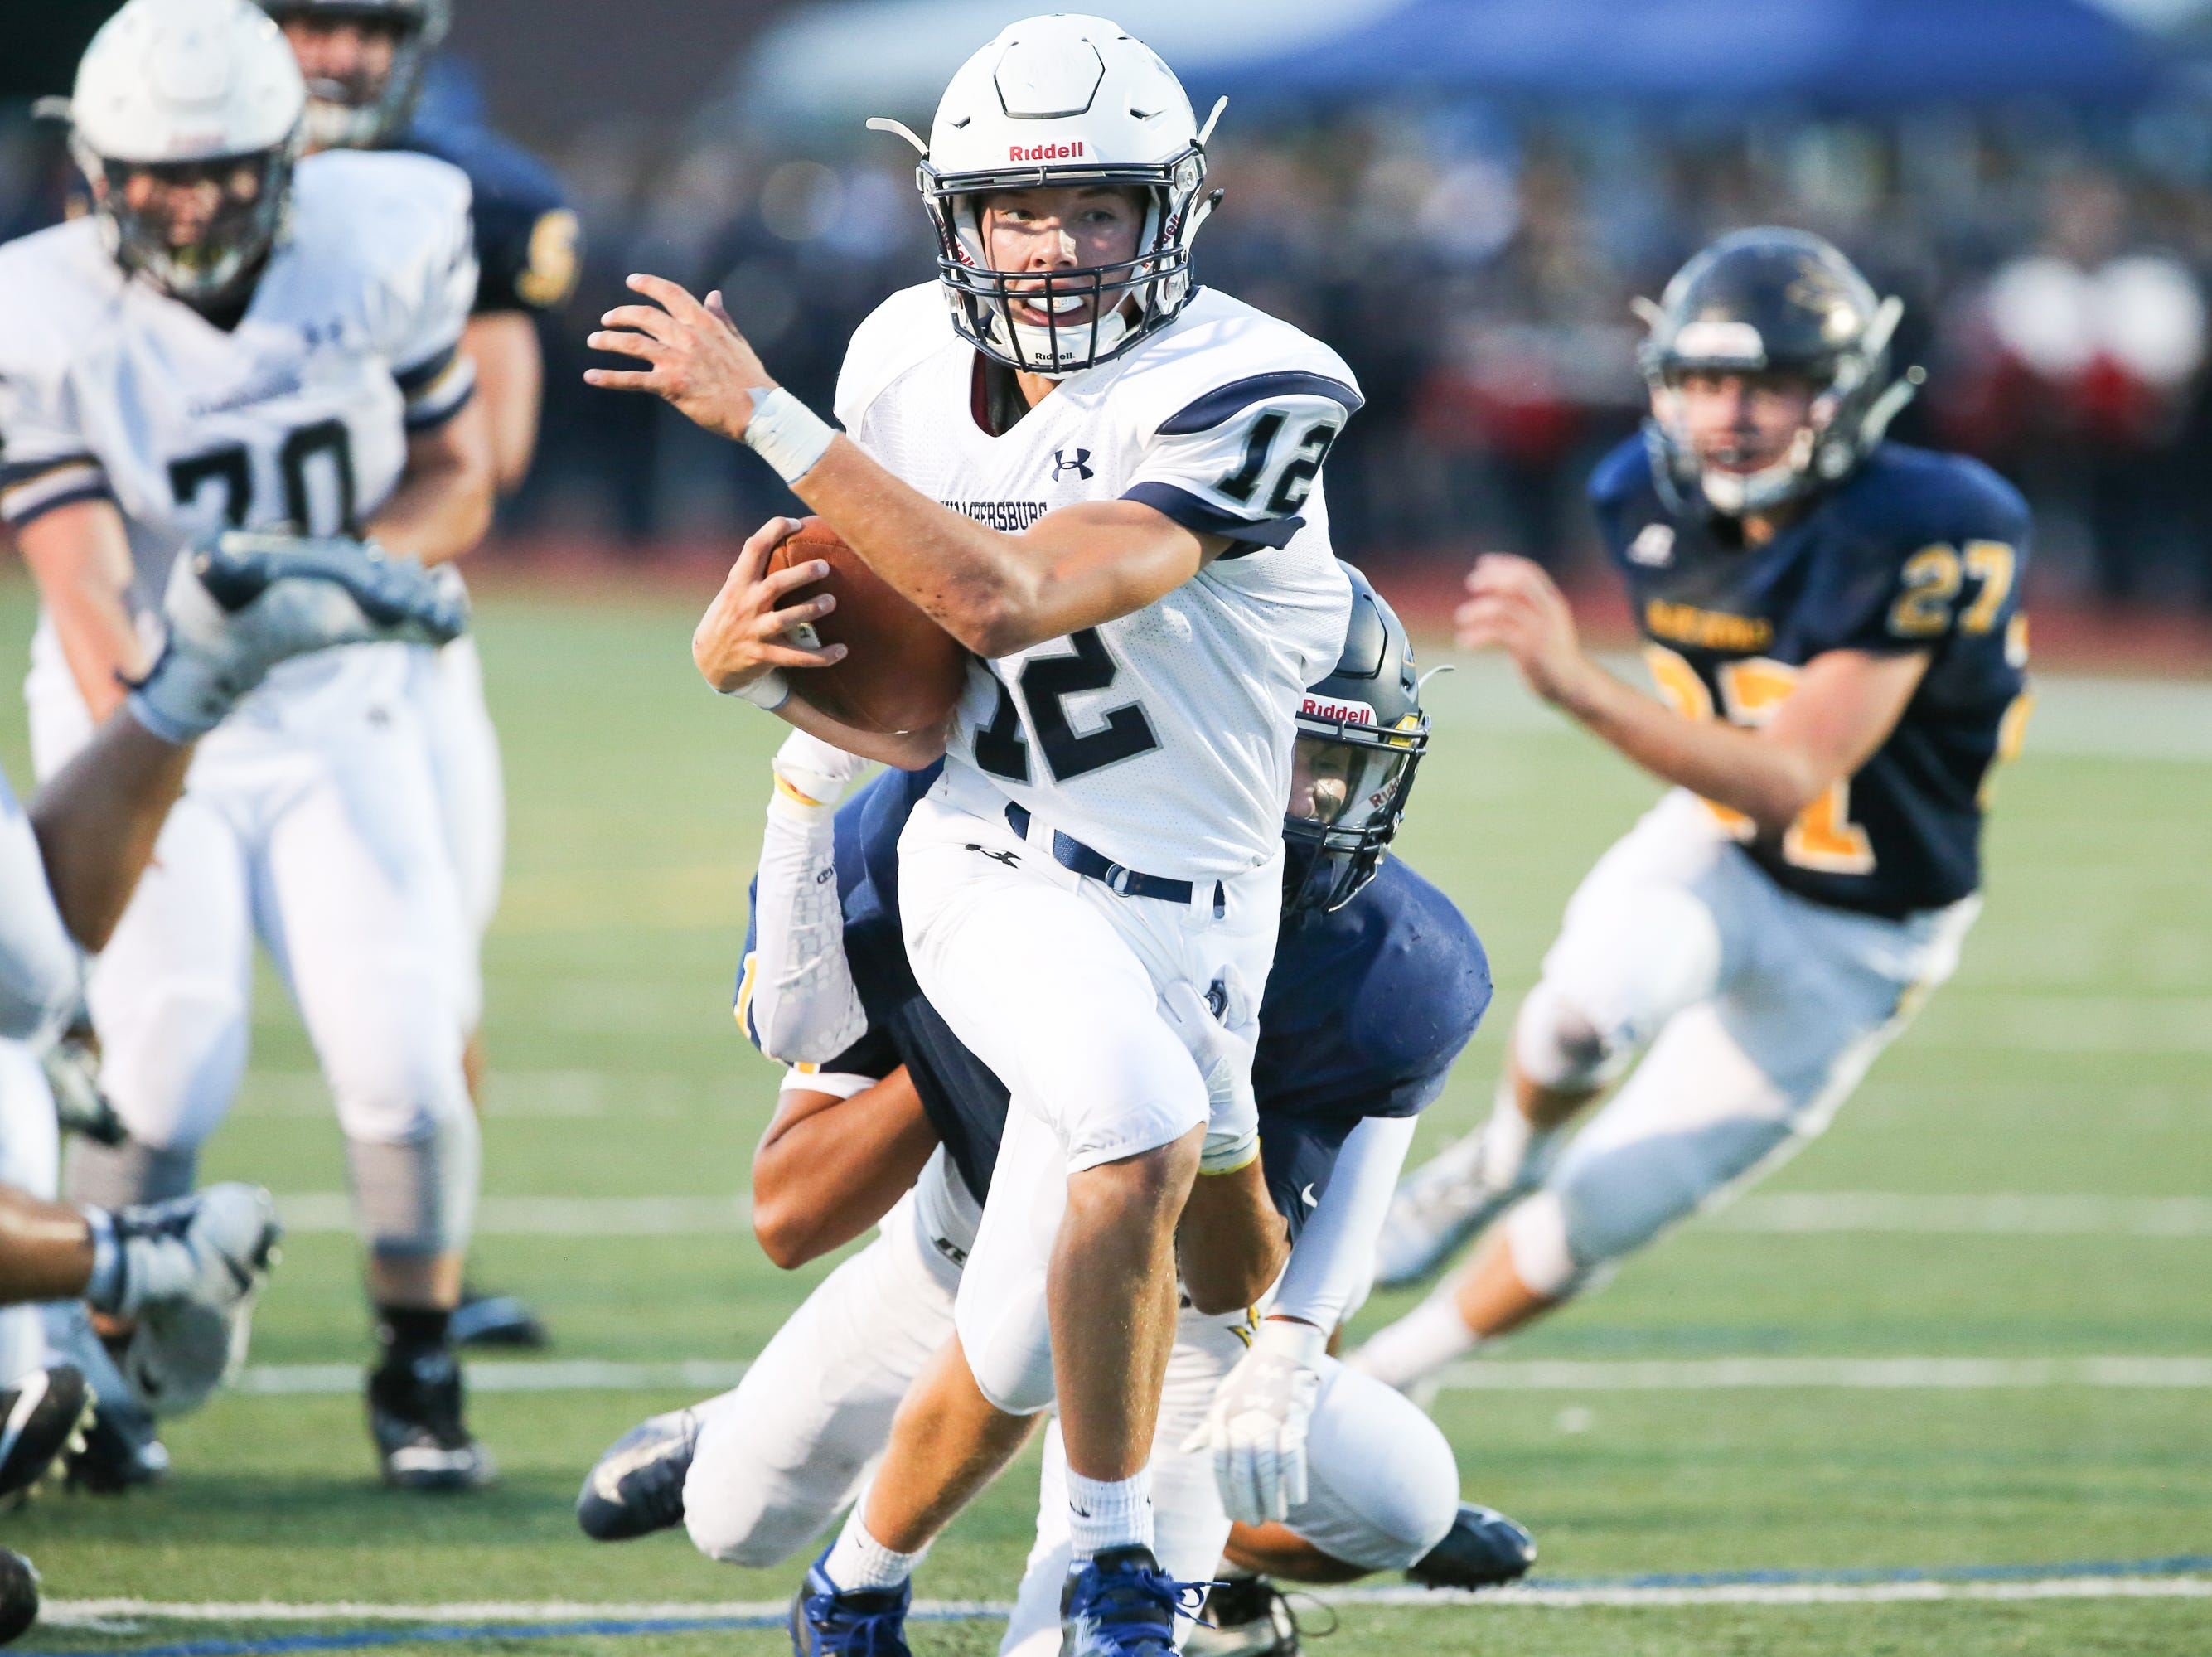 Chambersburg quarterback Brady Stumbaugh (12) takes off on a first down run during the season opener versus Greencastle-Antrim on Friday, Aug. 24, 2018, in Greencastle. Chambersburg won, 48-13.